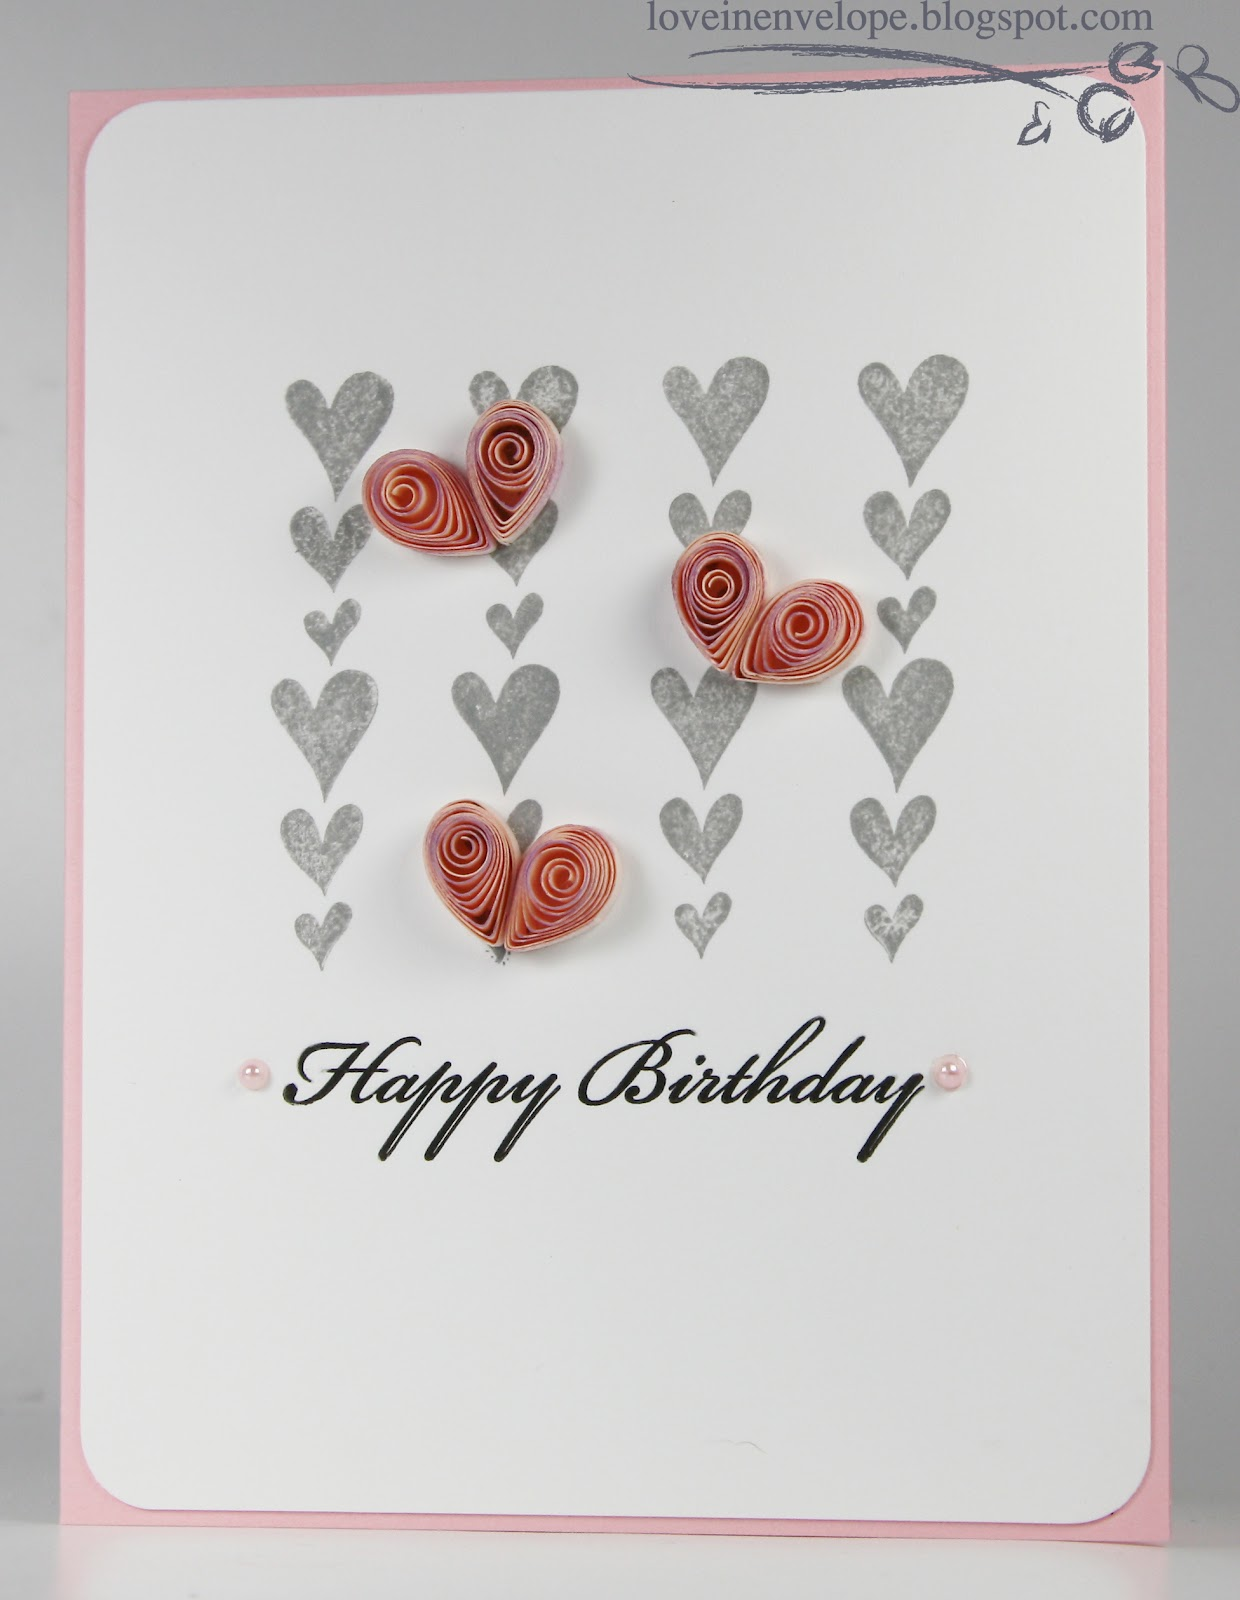 Love in Envelope: Letterpress Happy Birthday Quilled Hearts Card